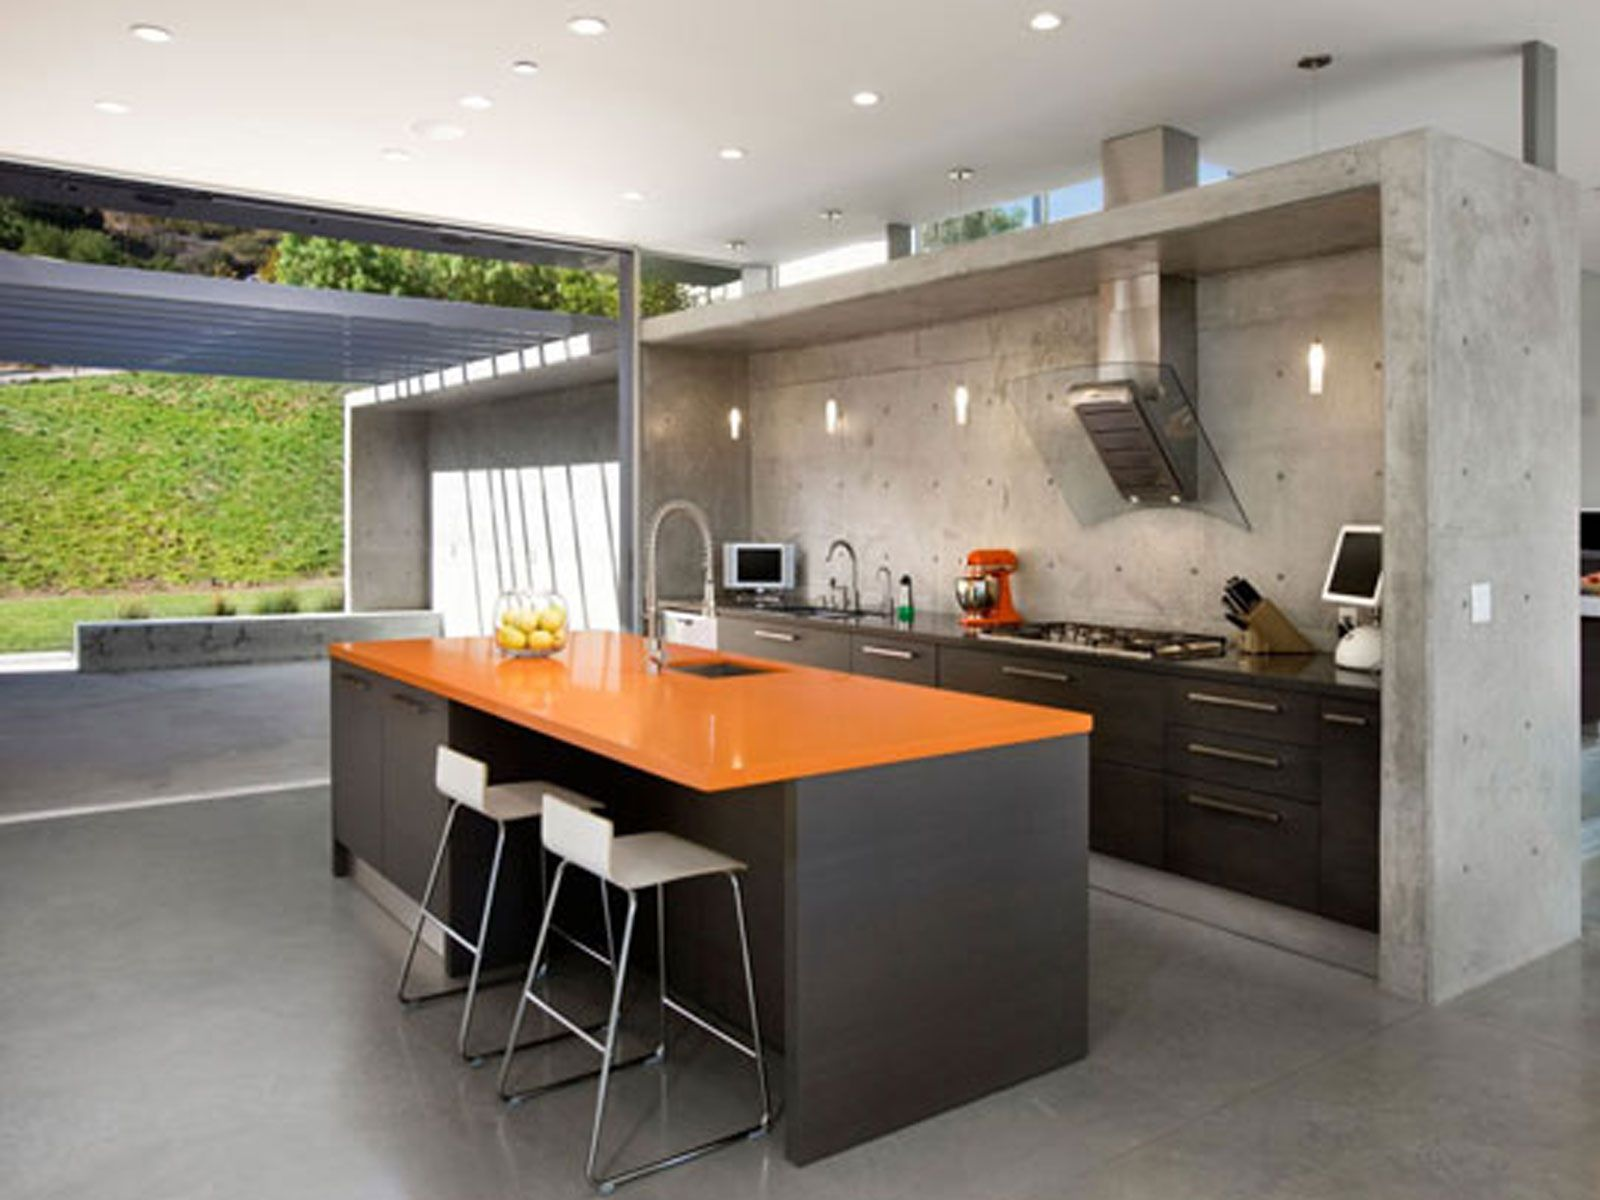 magnificent modern kitchen design images : kitchen | home